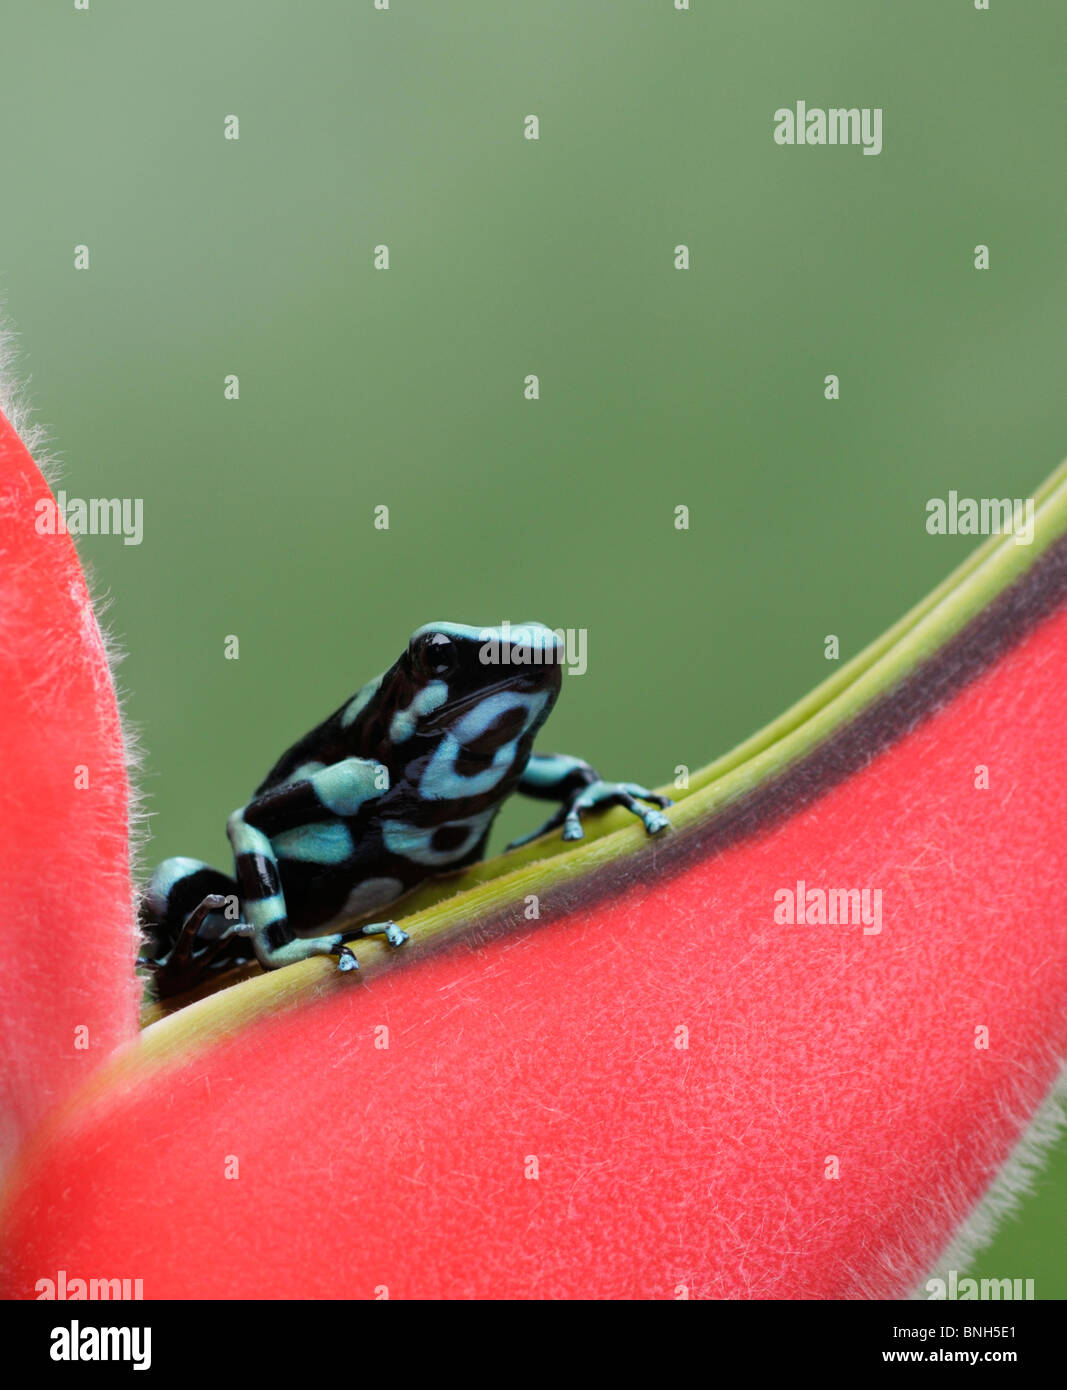 Green and Black poison dart frog, Dendrobates auratus, Selva Verde, Costa Rica - Stock Image